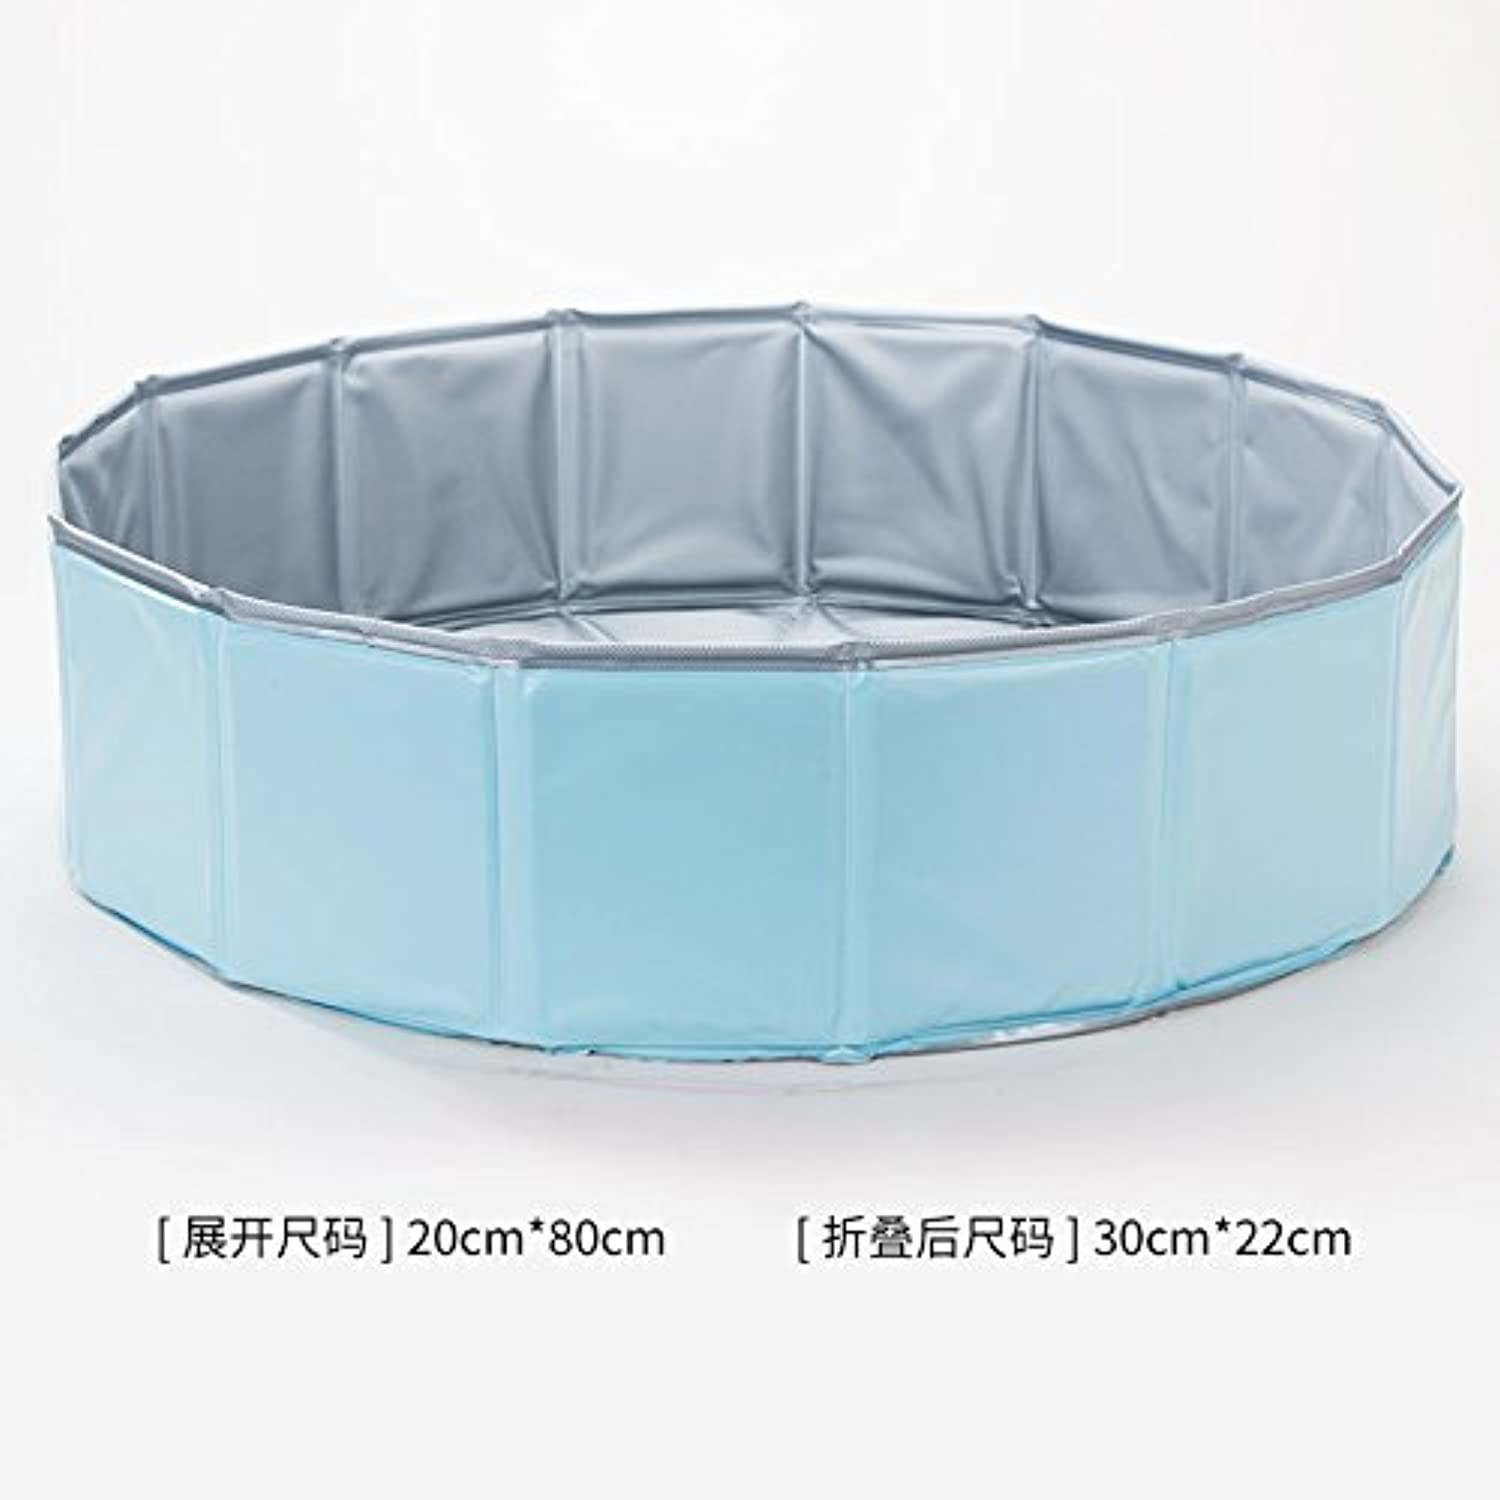 Puppy Massage Basin, Bathtub Folding pet Bath tub, Dog Swimmer, pet Round Bath Basin,Sky bluee